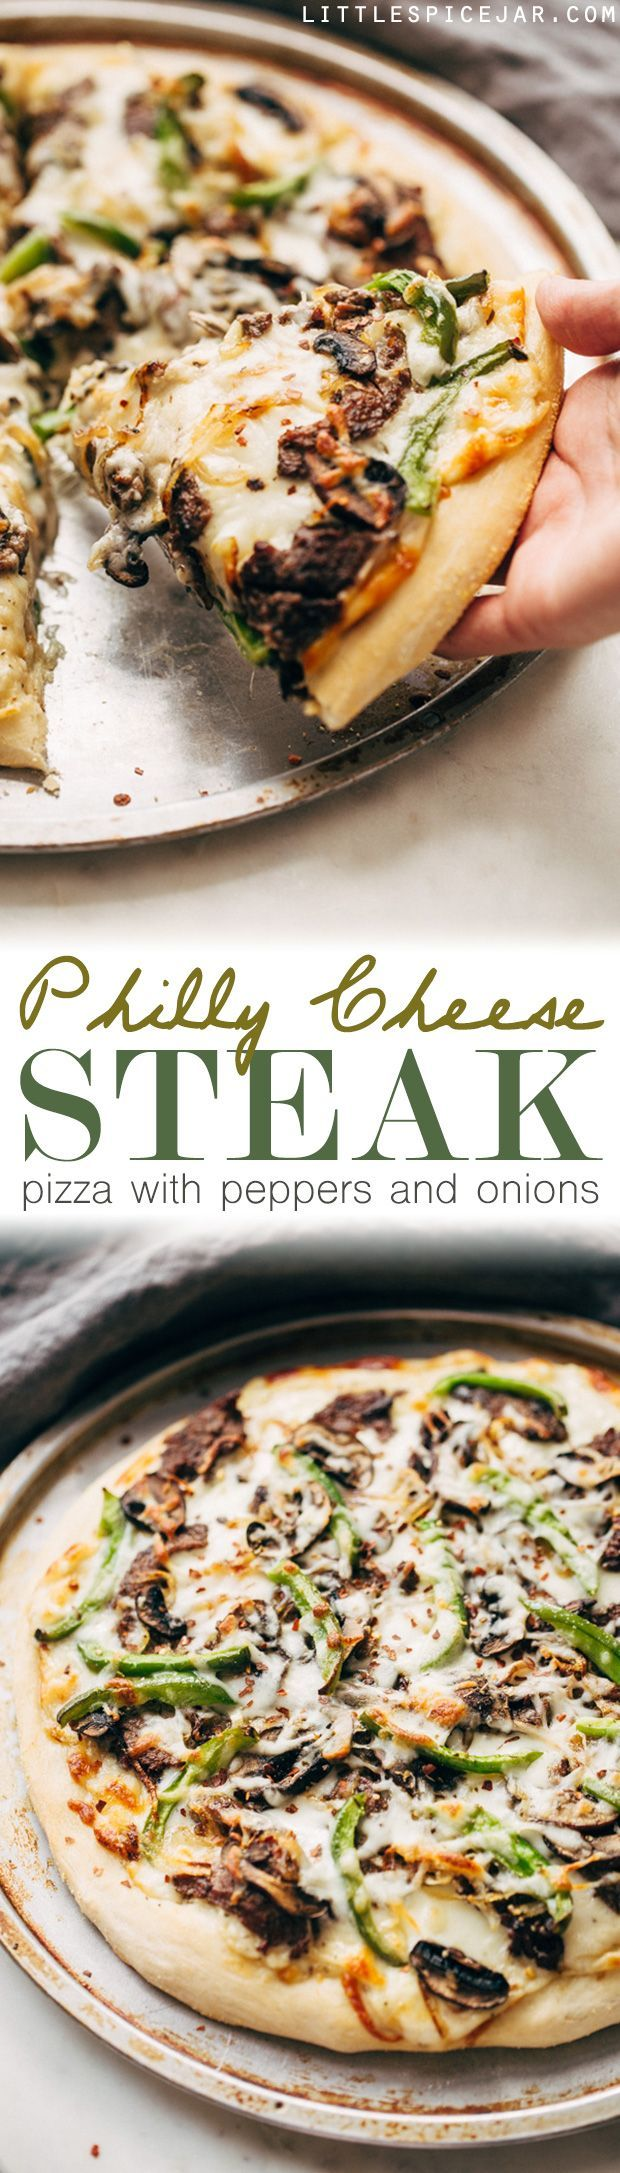 Philly Cheese Steak Pizza - Change up your Friday night pizza routine with a homemade Philly cheese steak pizza! Loaded with tons of veggies and meat, it's sure to be a crowd-pleaser! #pizza #phillycheesesteakpizza #steakpizza   Littlespicejar.com